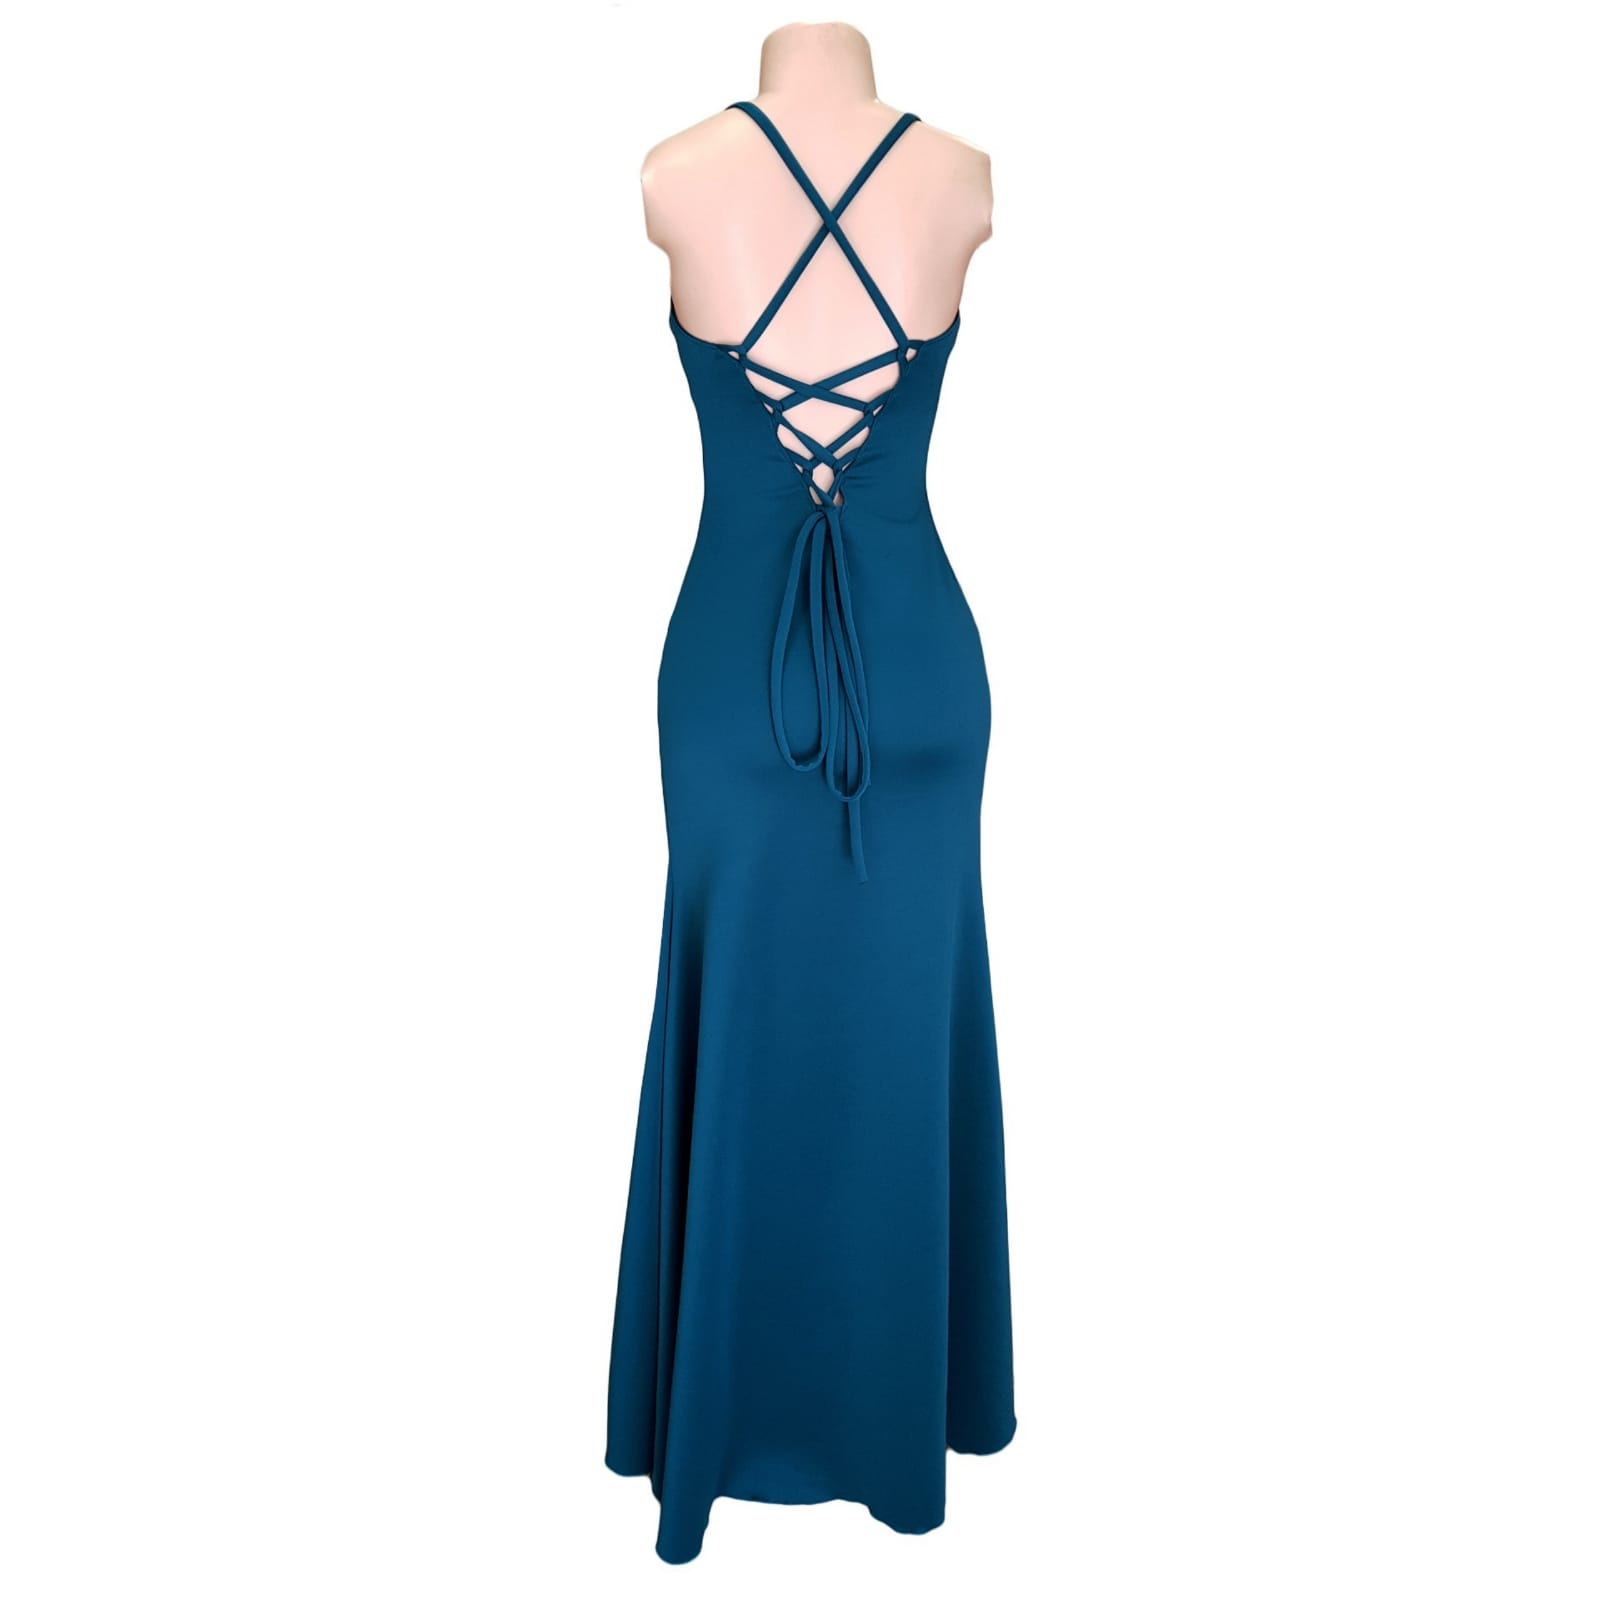 Teal long straight cut prom dress with a slit 5 teal long straight cut prom dress with a slit. Rounded neckline. V back with lace up detail.